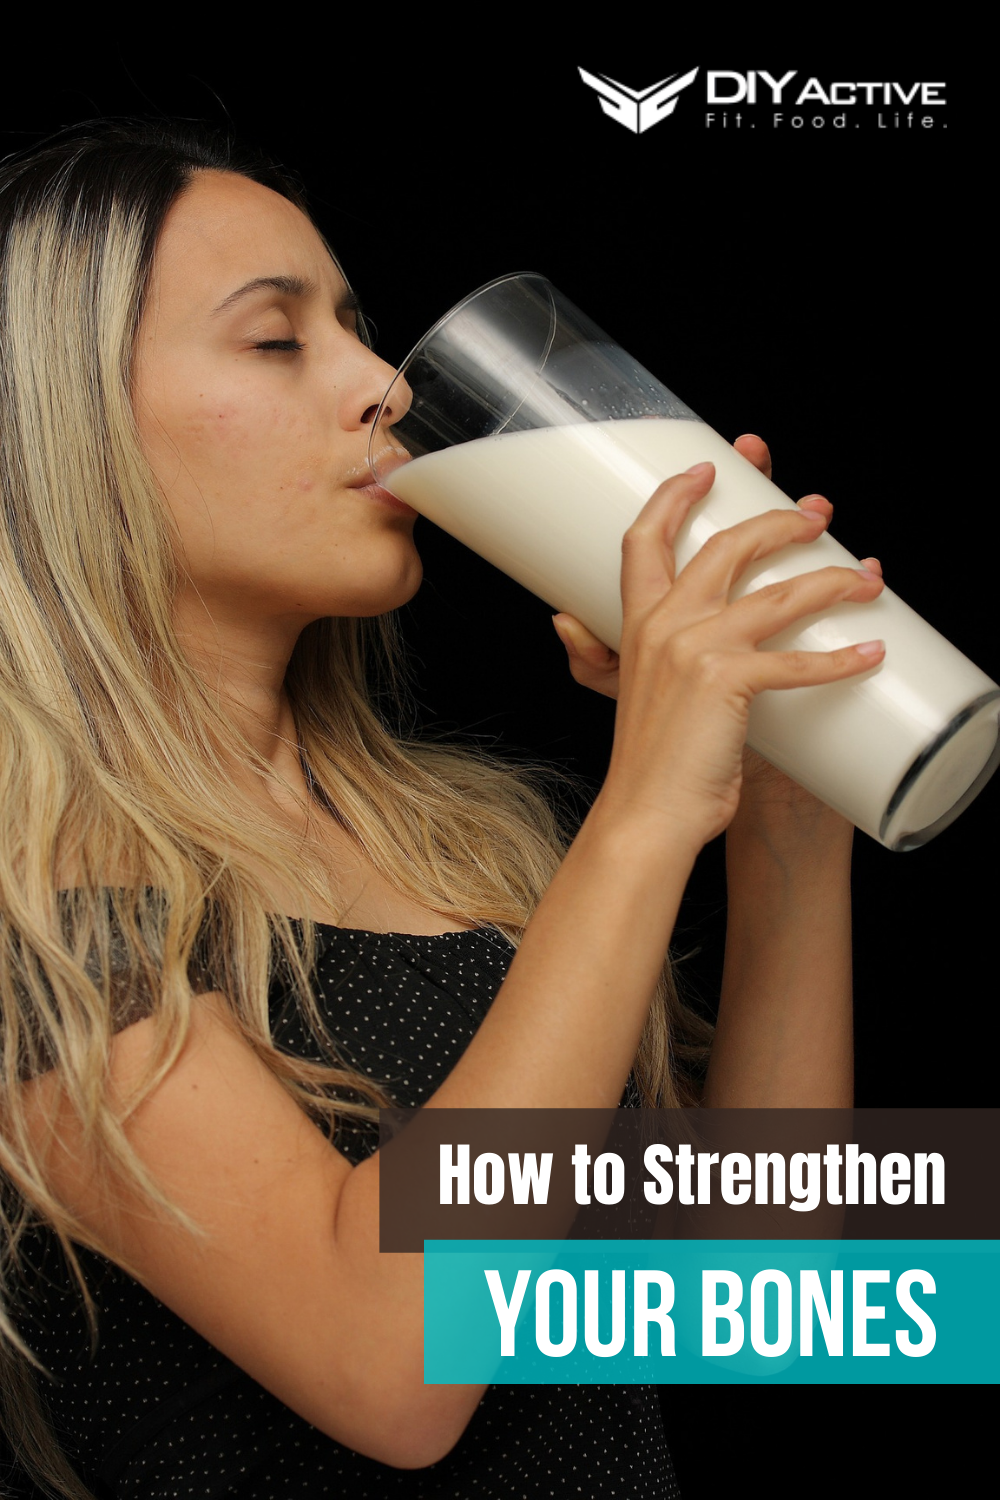 Why You Need Calcium: It Does More Than Strengthen Your Bones